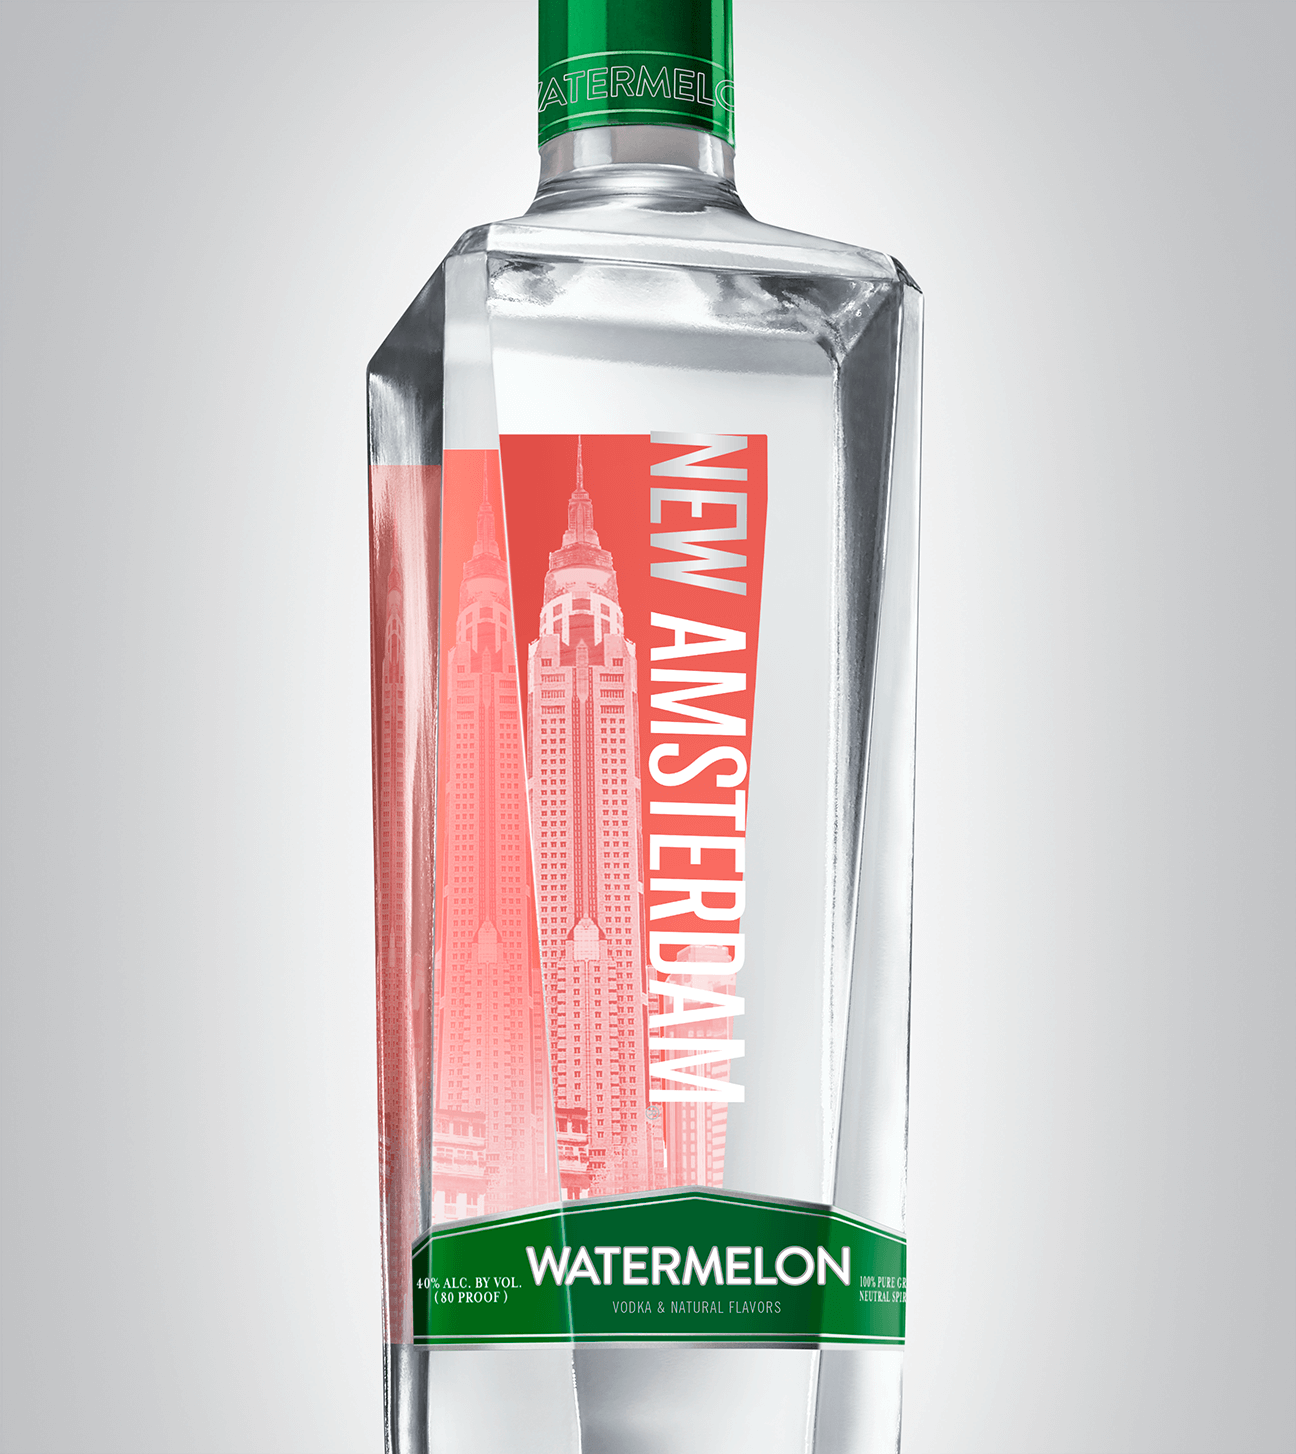 Bottle of New Amsterdam Watermelon